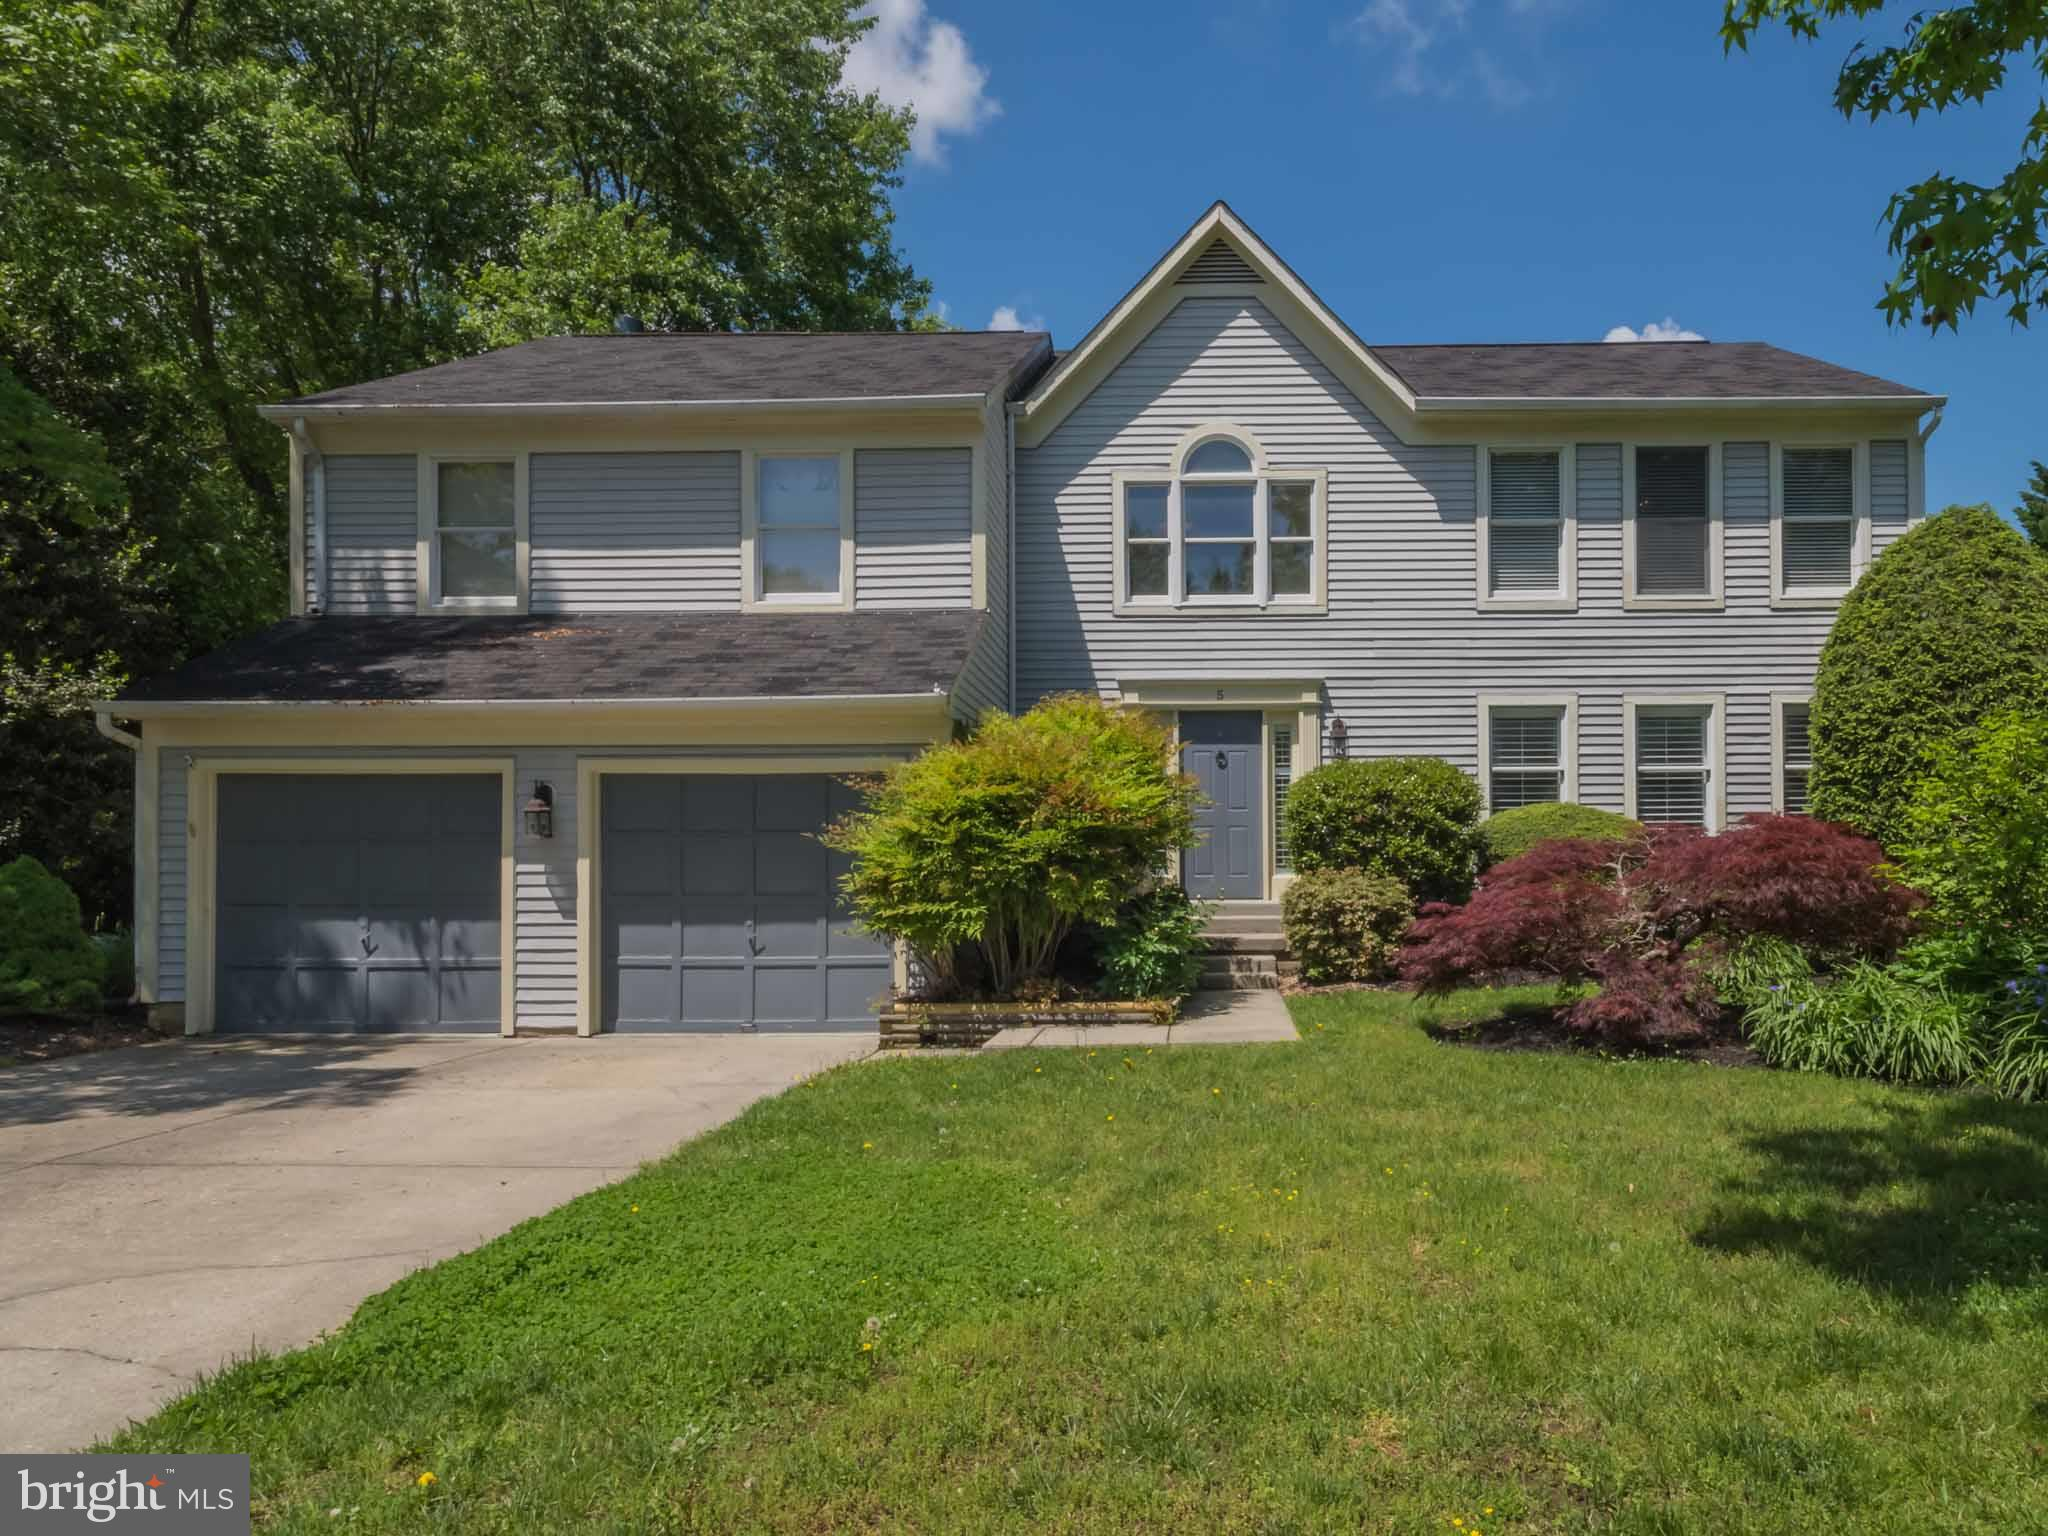 5 SOMERSET, ANNAPOLIS, MD 21403